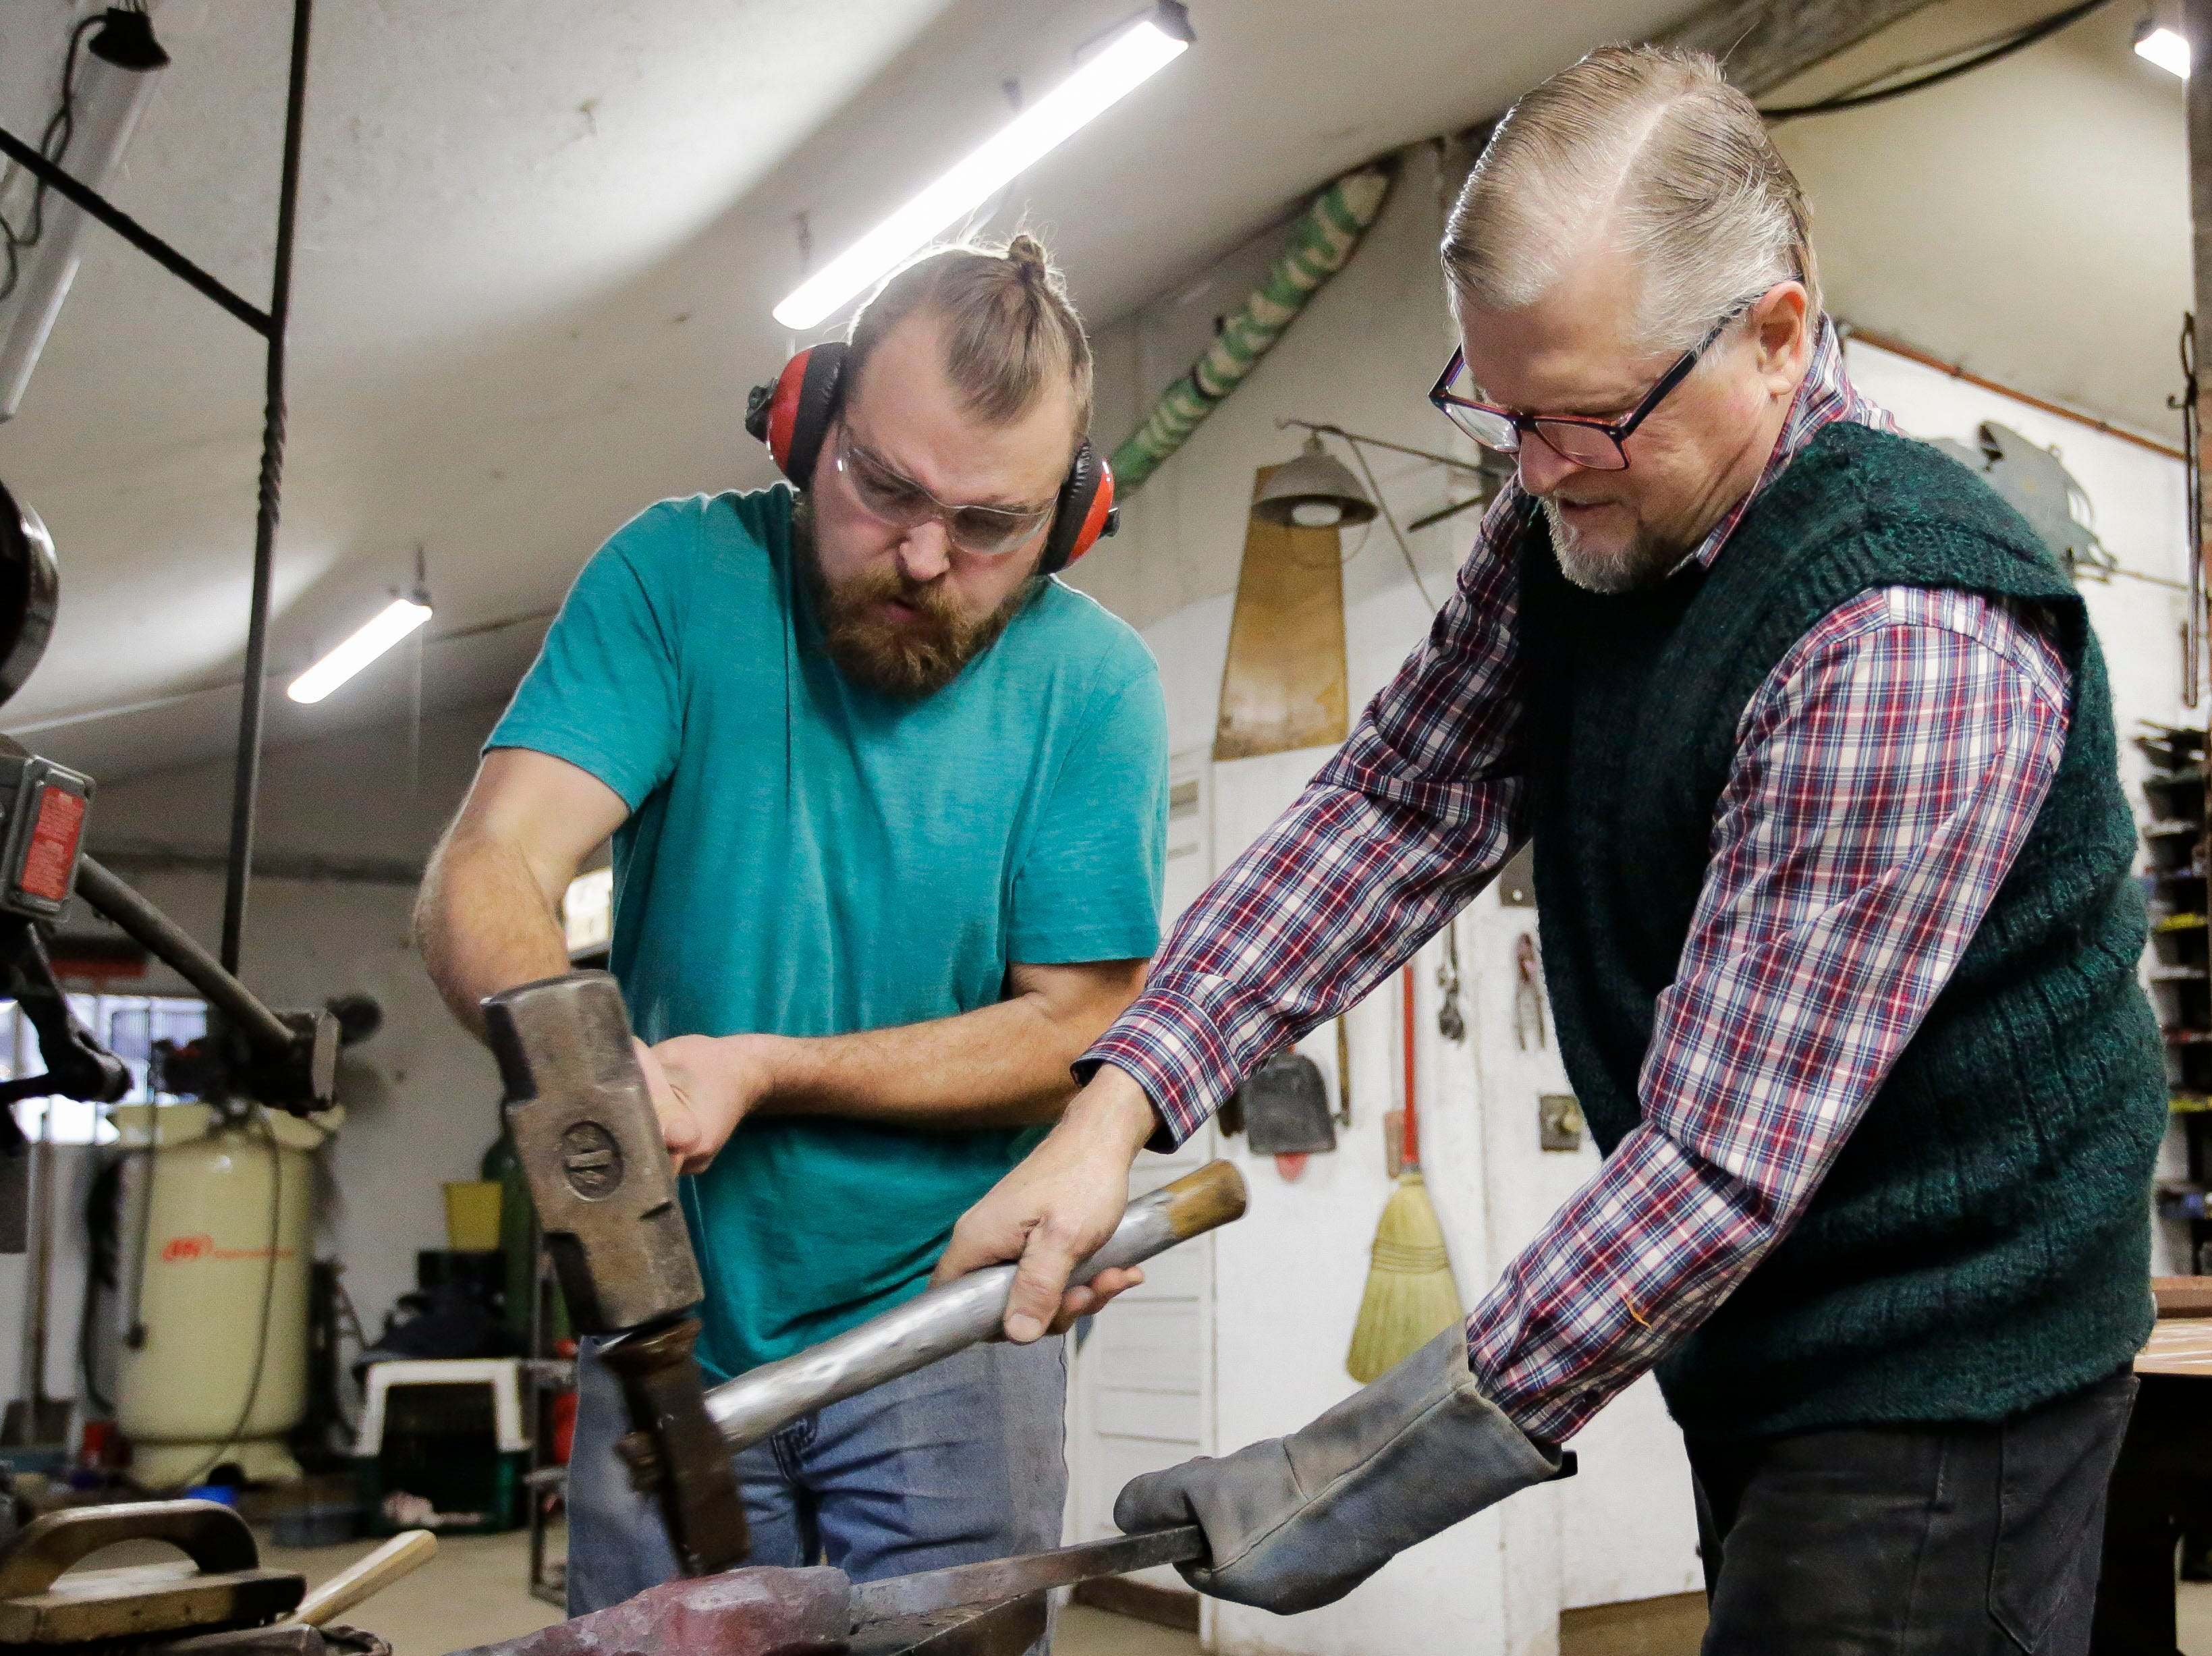 Vincent Kochanowski and Boleslaw Kochanowski hammer out part of a design on Tuesday, December 25, 2018, at their workshop in Junction City, Wis.